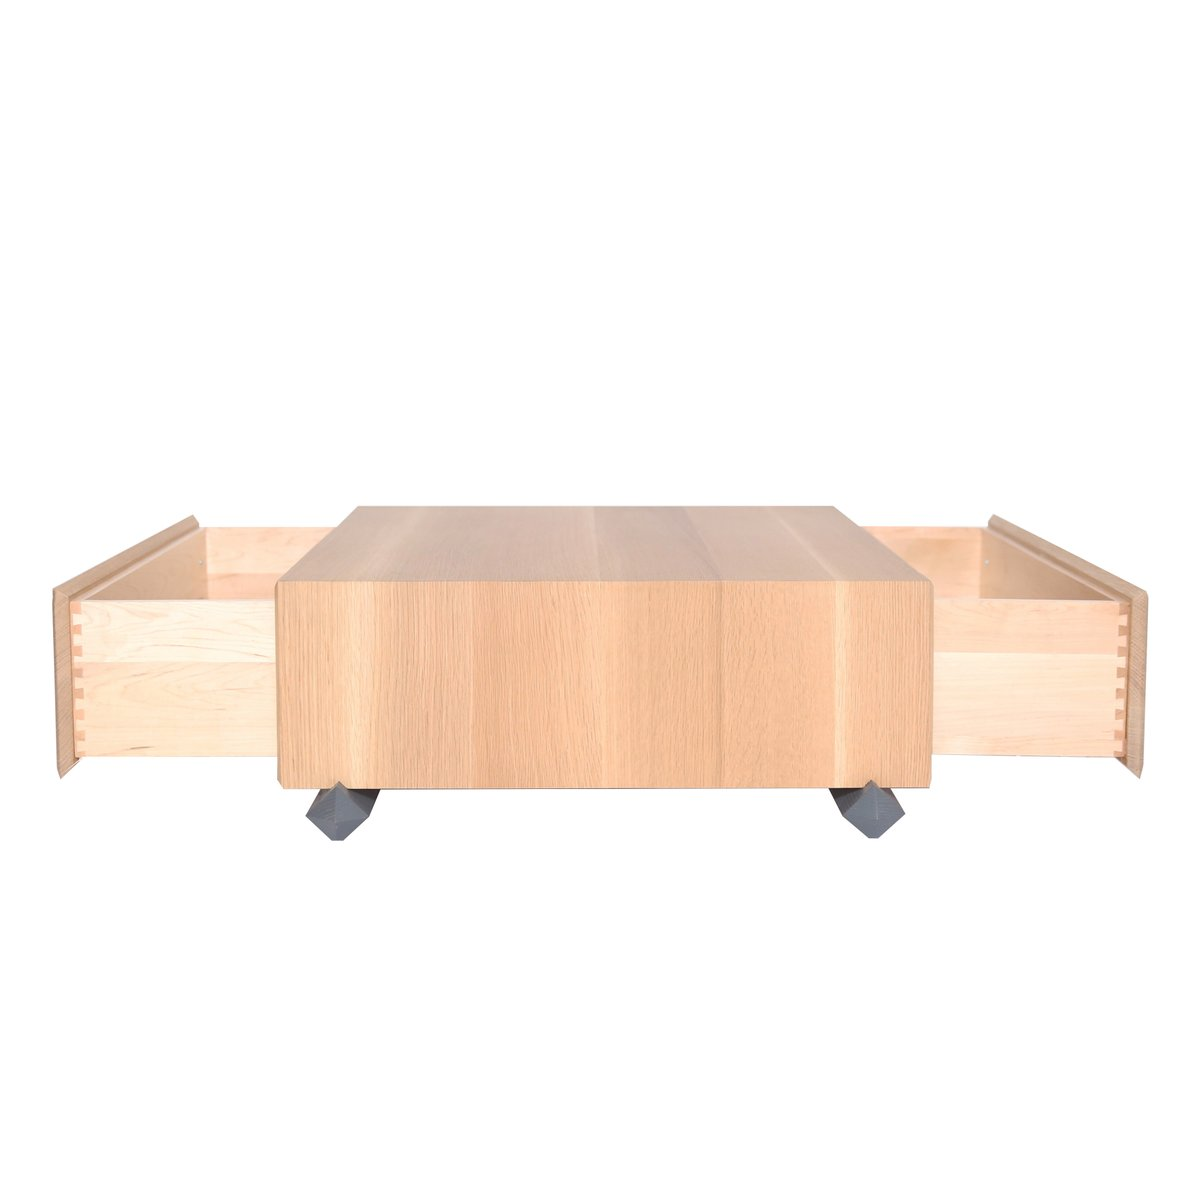 Wooden Coffee Tables With Drawers Stack Storage Wood Coffee Table With Drawers From Debra Folz